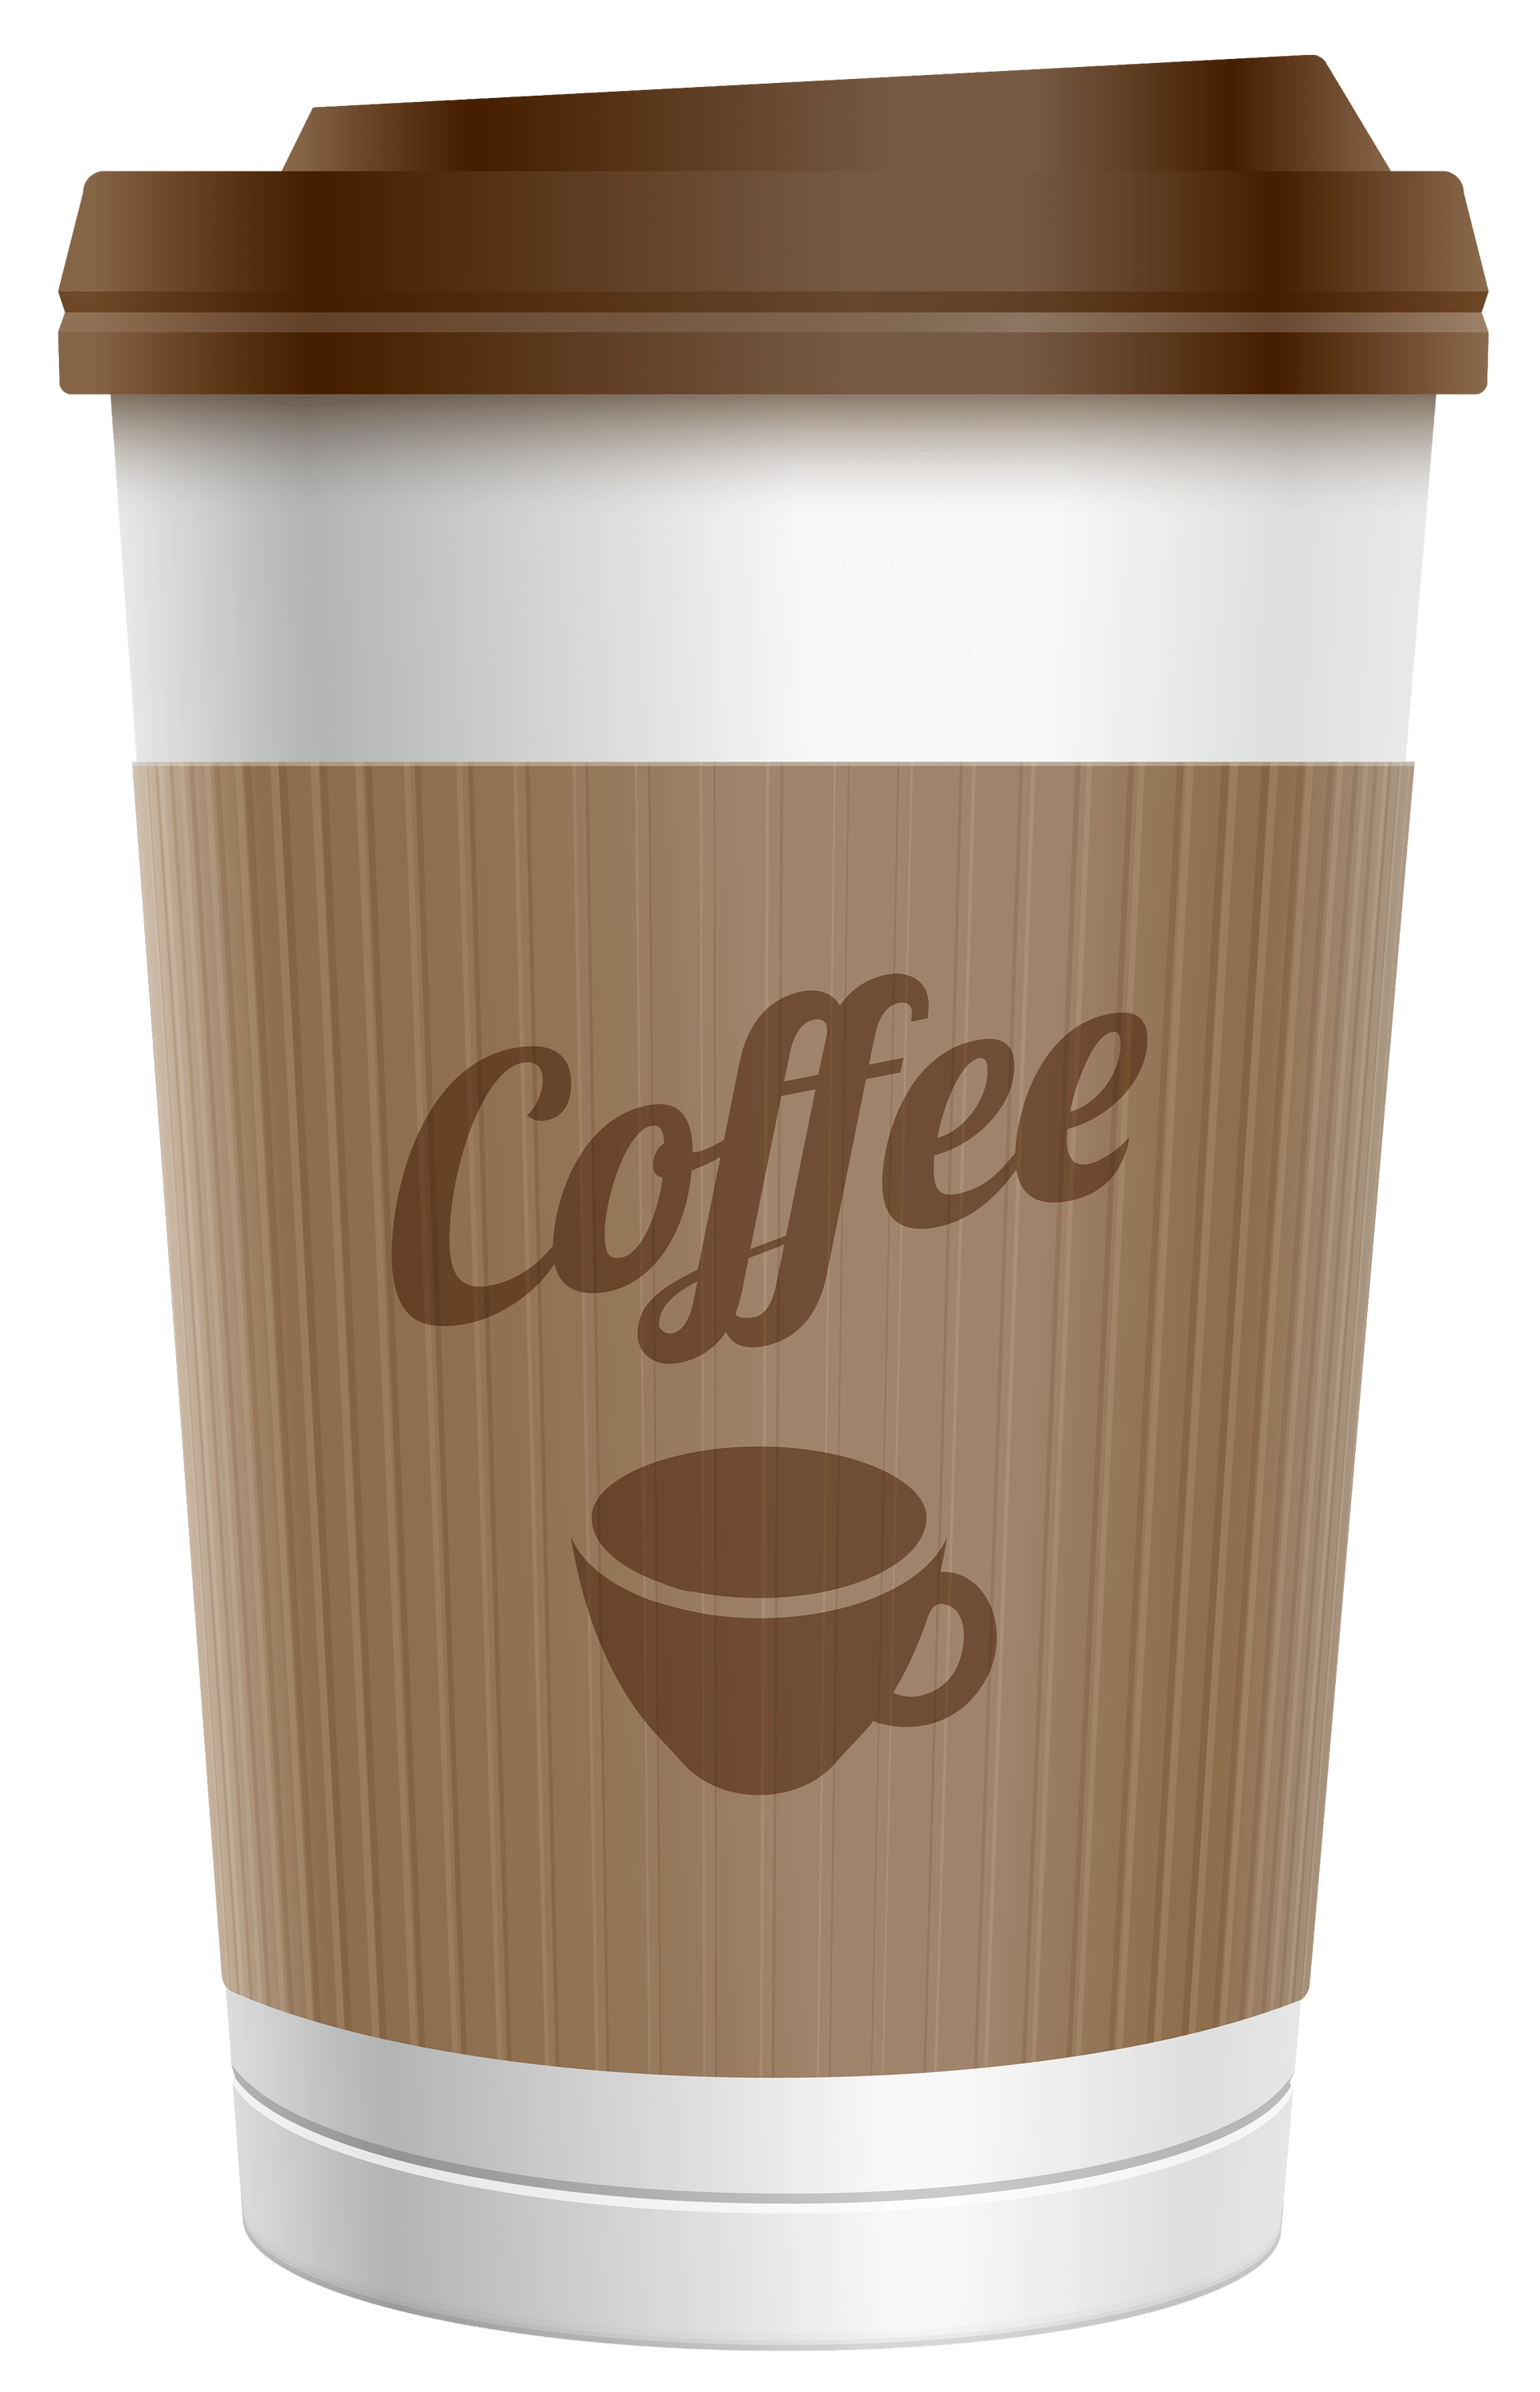 coffee cup transparent background png the image kid has it. Black Bedroom Furniture Sets. Home Design Ideas